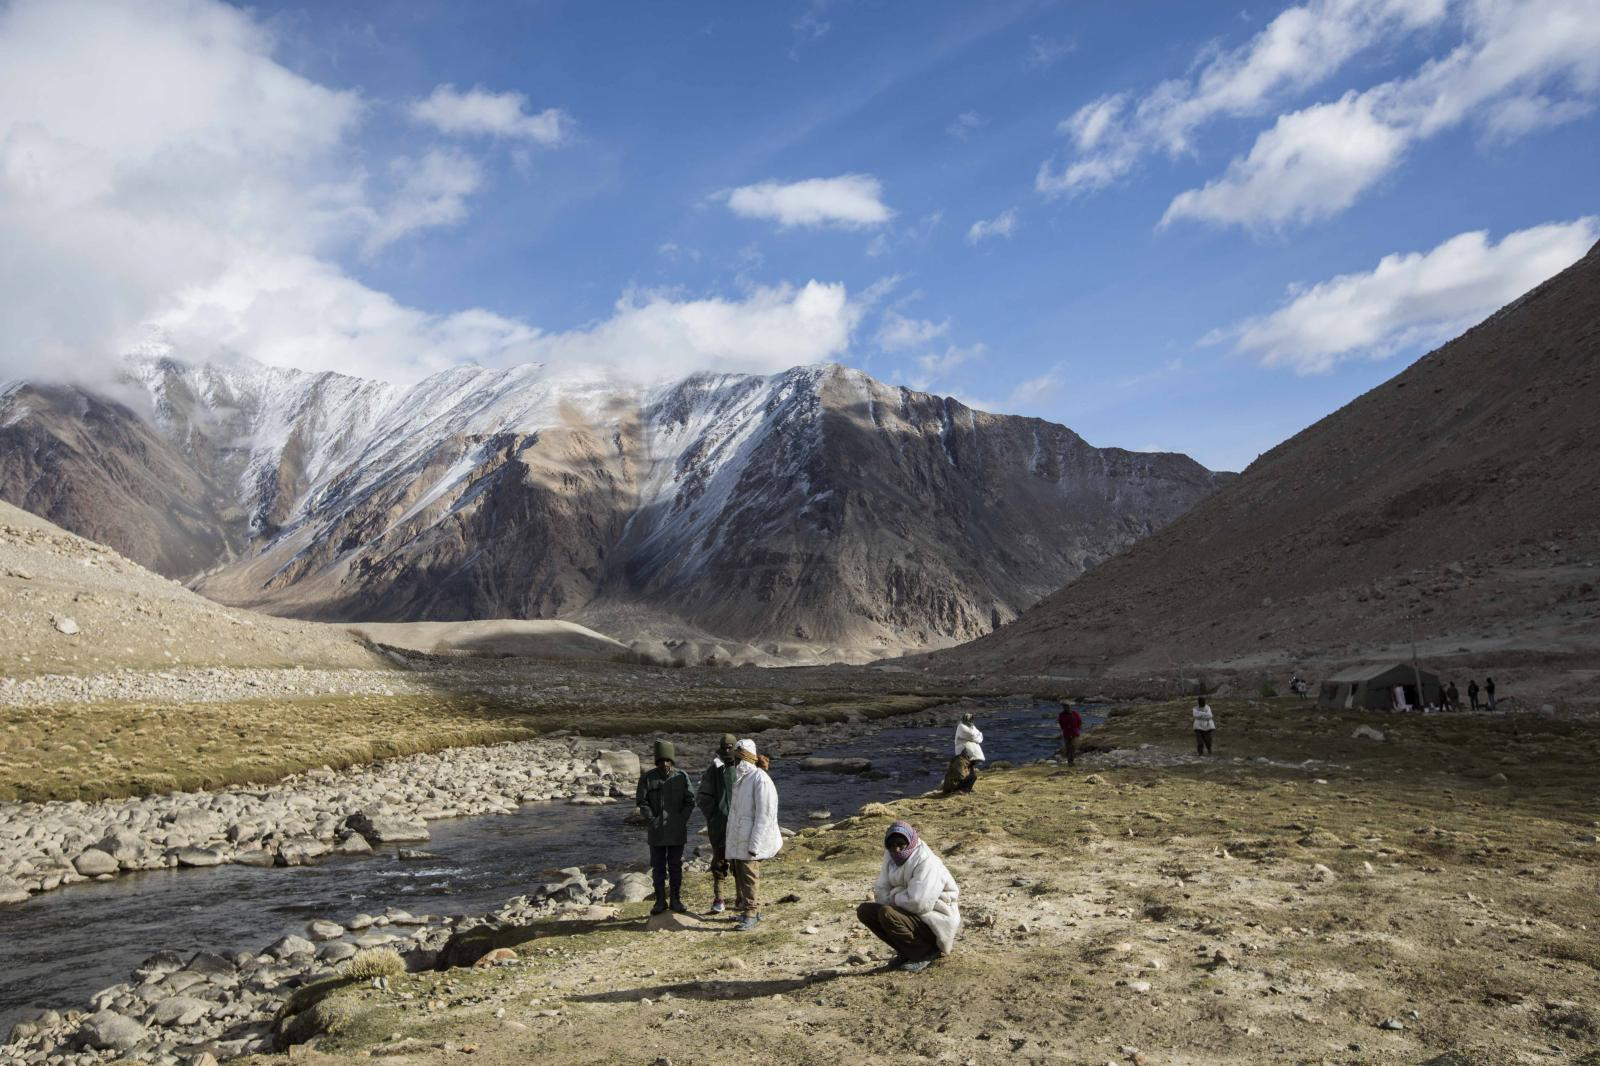 Road maintenance workers from Jharkhand state warm up with the first rays of the sun, as they wait for a ride to their worksite at their camping grounds near Tangtse village in northern India's Ladakh region.